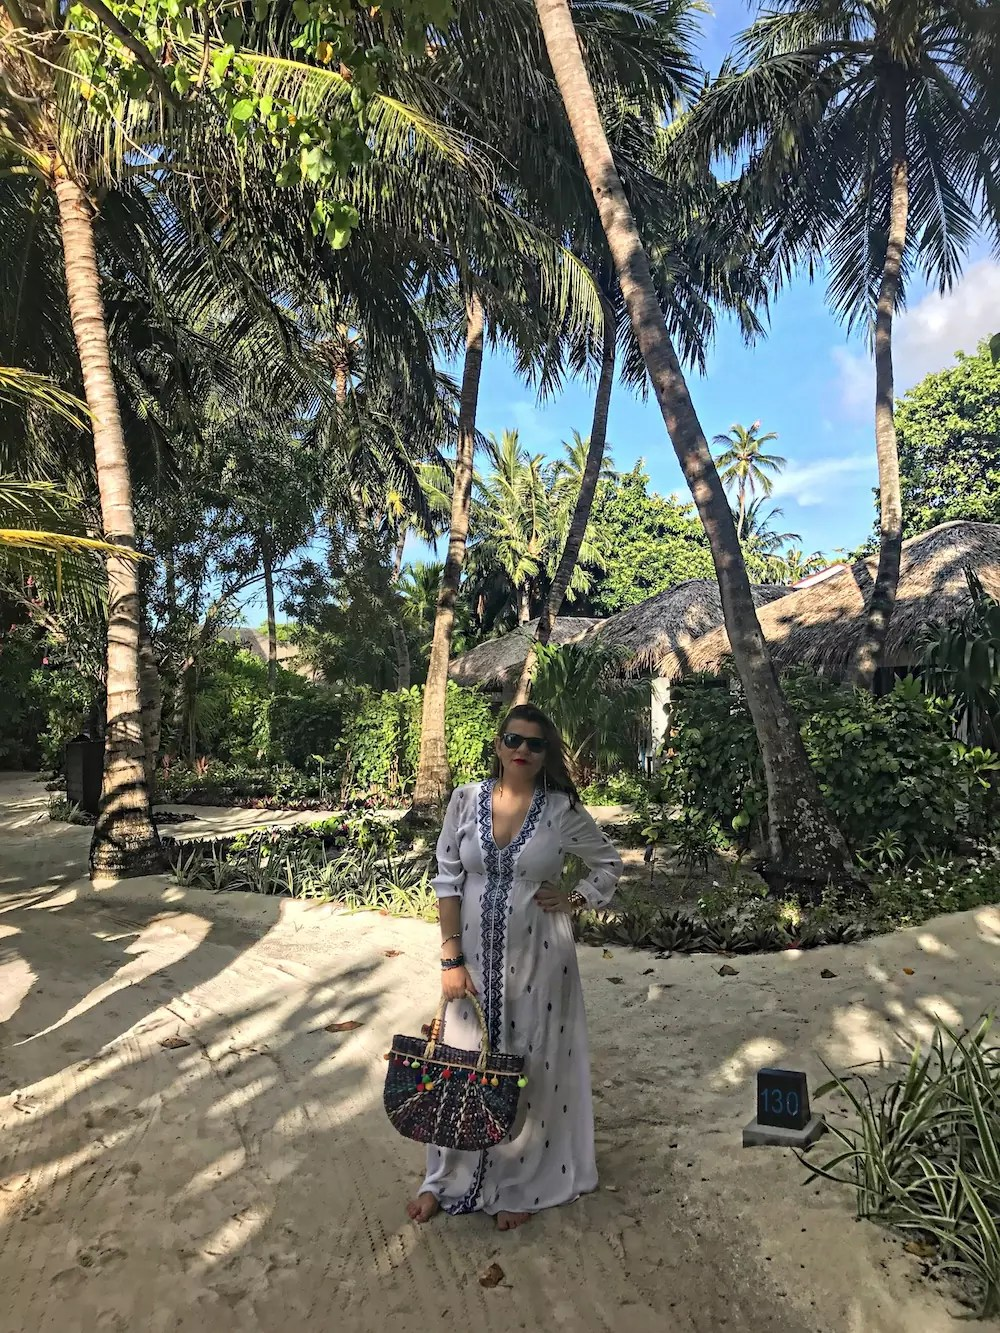 velassaru-maldives-alley-girl-fashion-travel-life-style-blog